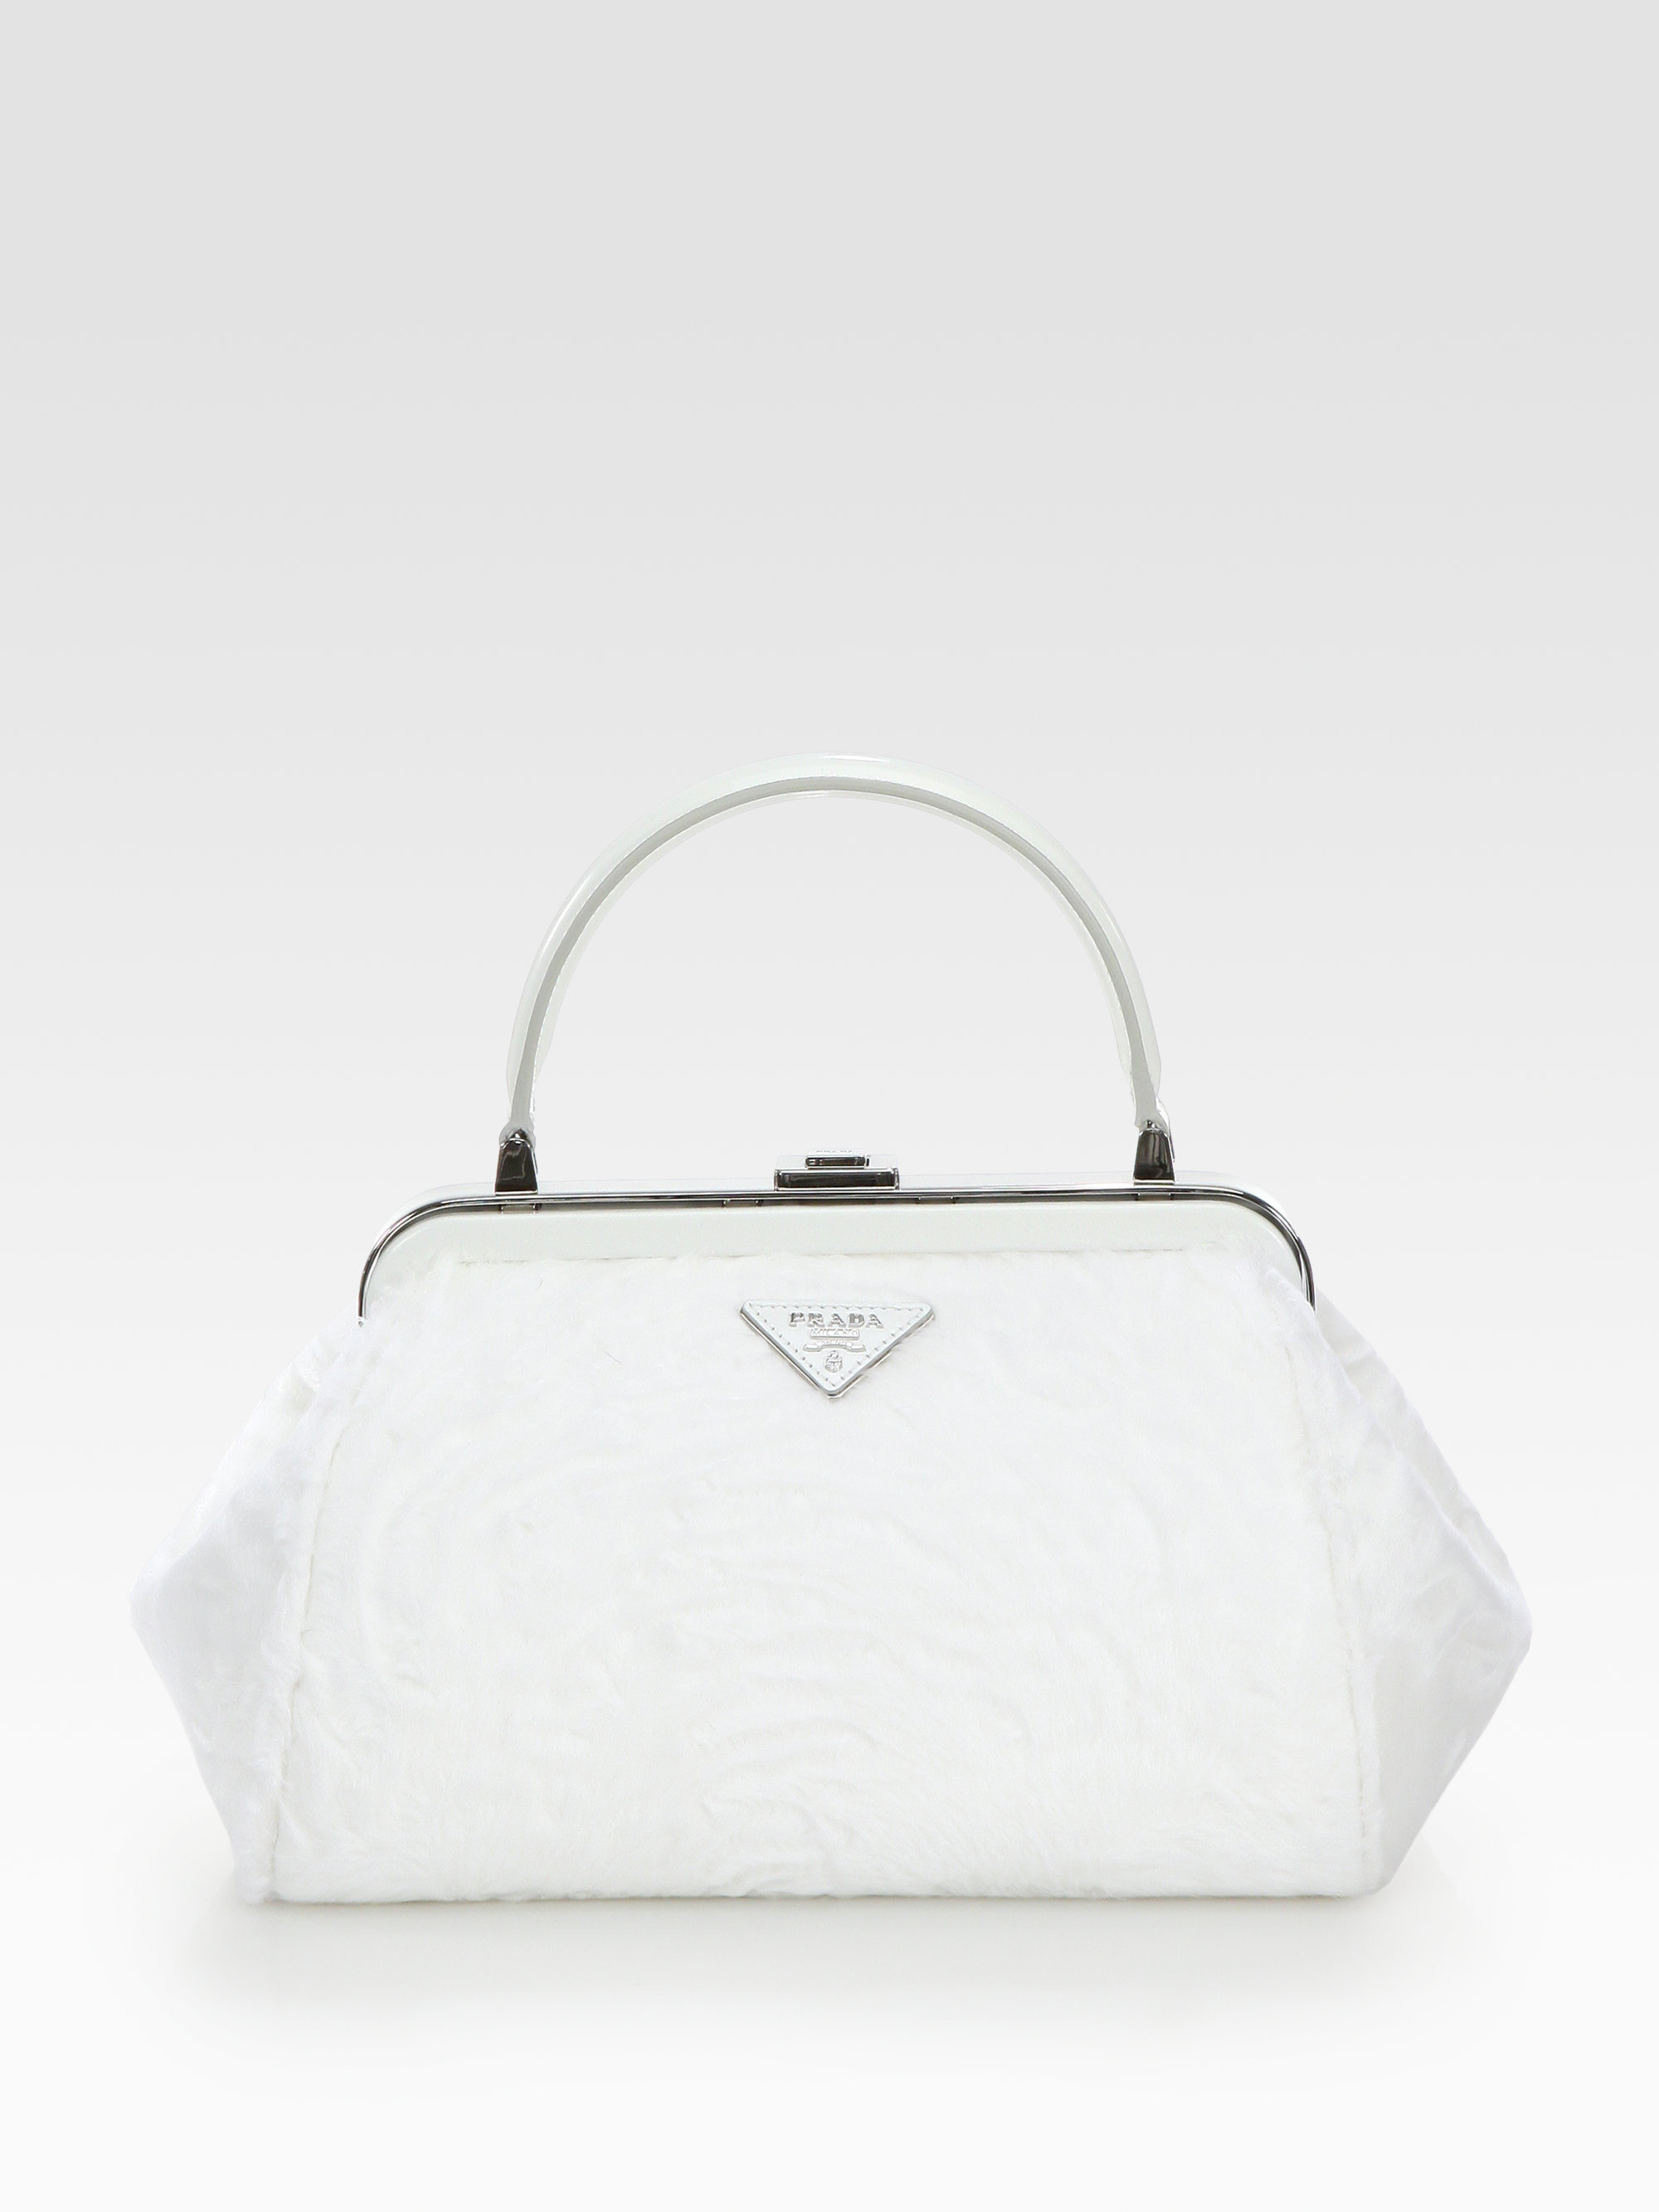 Prada Astrakhan Small Frame Bag in White | Lyst - prada frame bag black